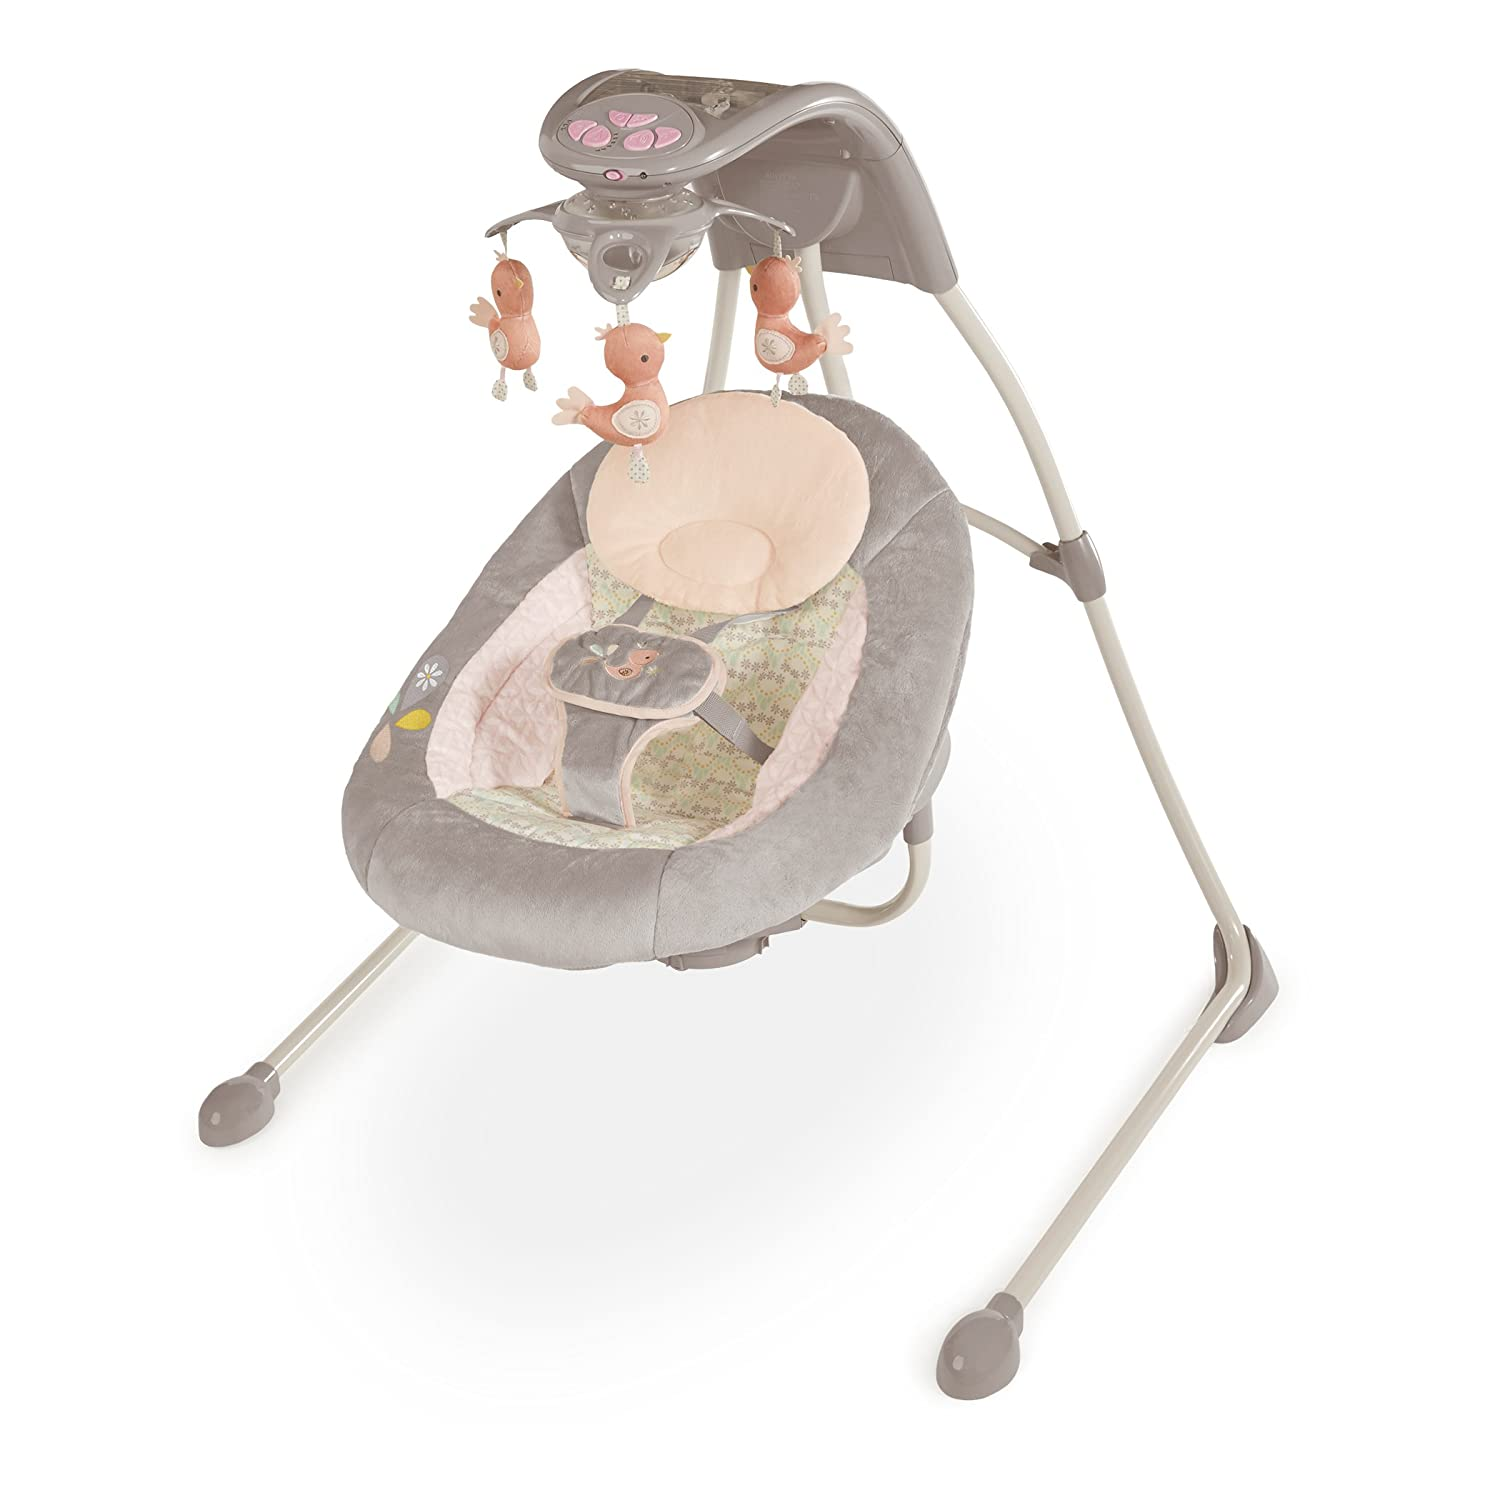 Ingenuity DreamComfort InLighten Cradling Swing - Braden Kids II - (Carson CA) 10875-1